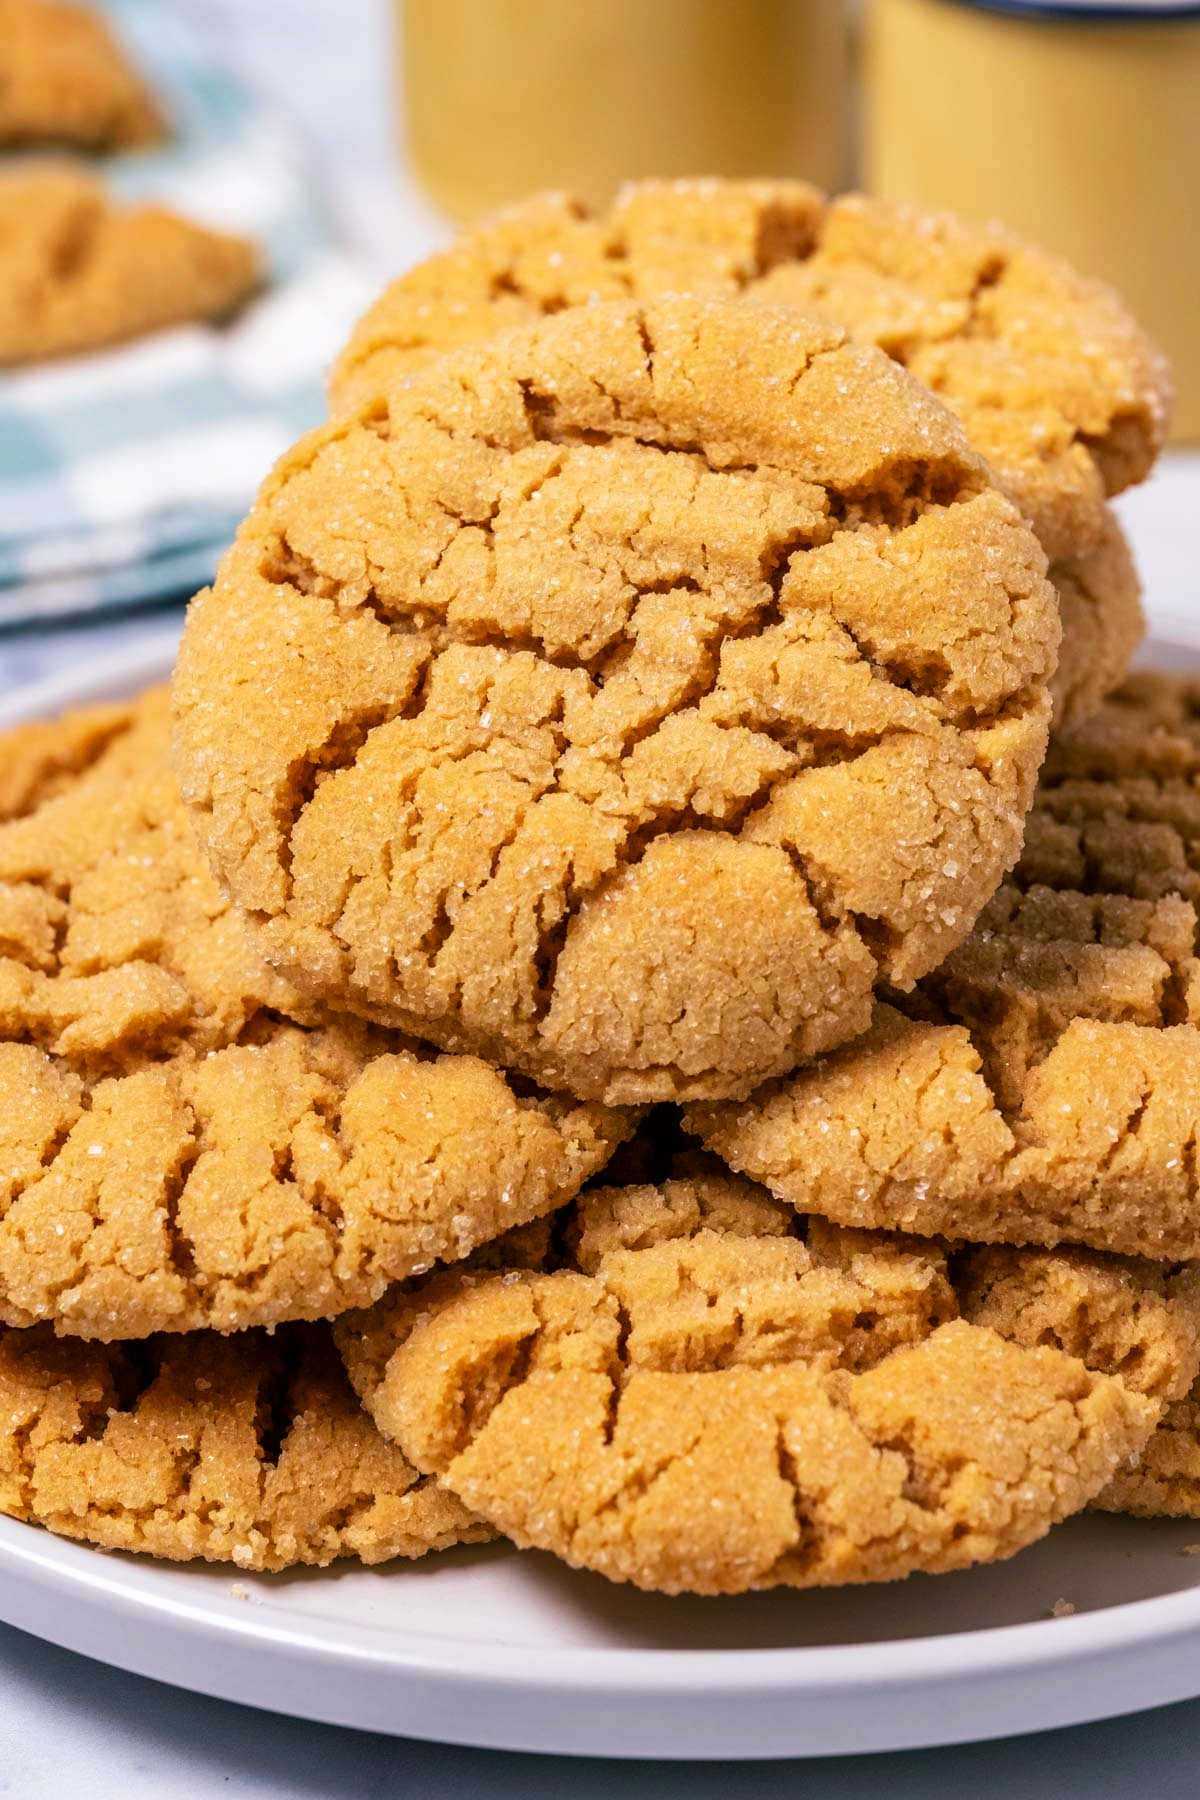 Eggless peanut butter cookies stacked up on a white plate.